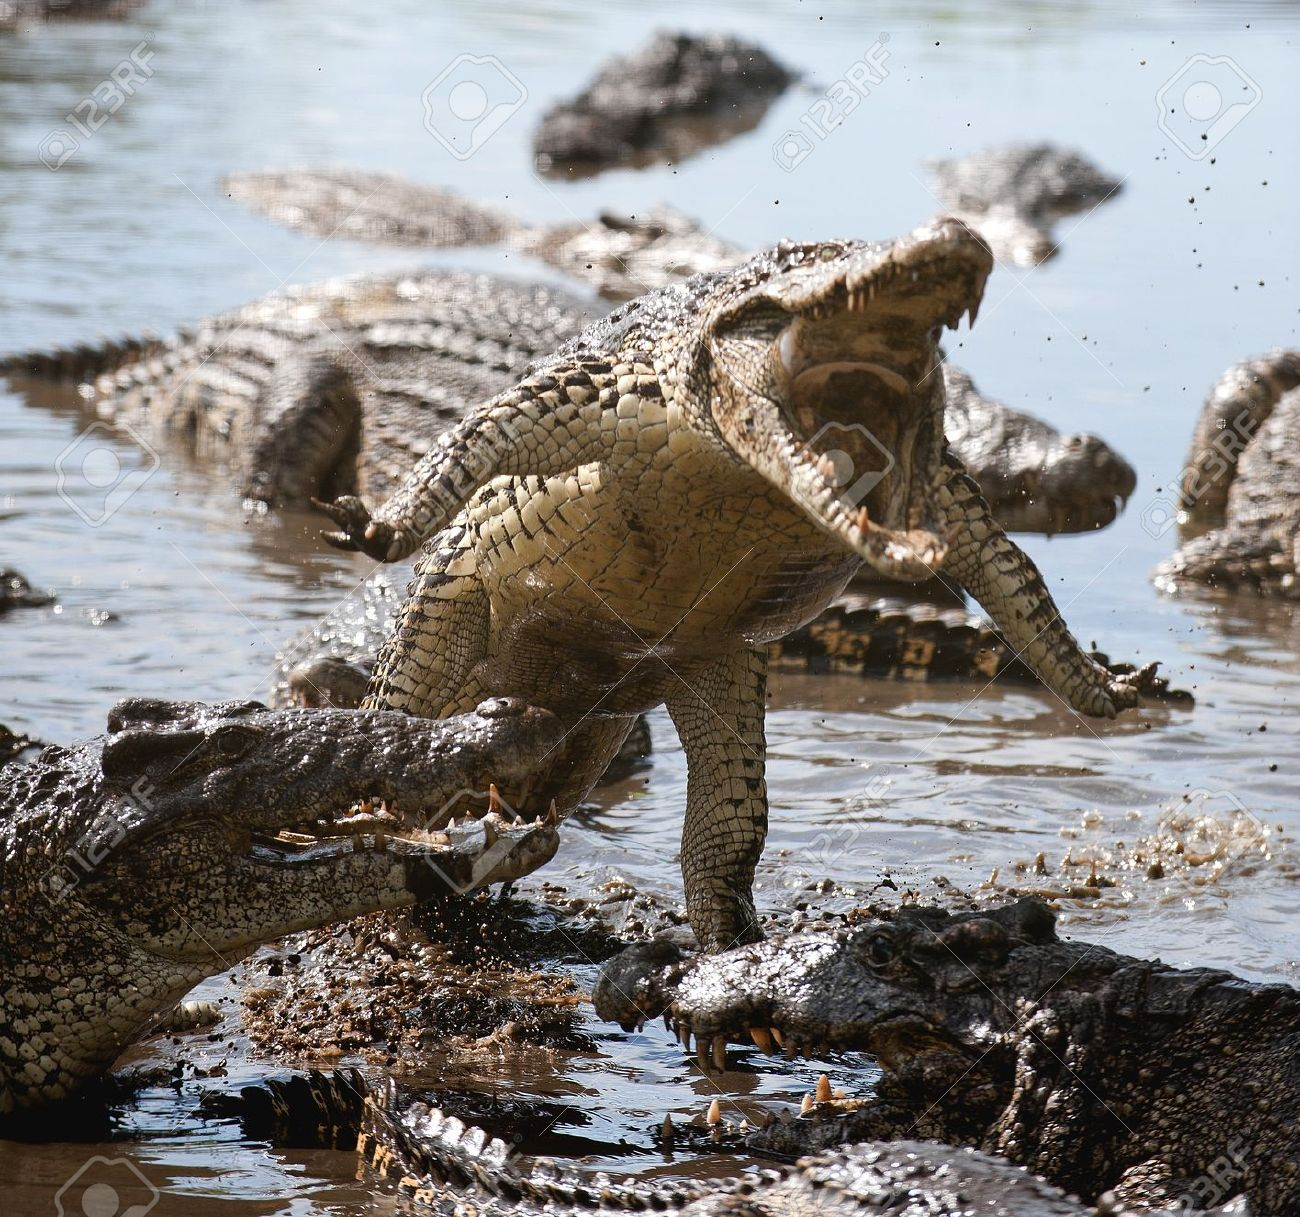 http://previews.123rf.com/images/surz/surz1110/surz111000040/10800872-Attack-crocodile-Cuban-Crocodile-crocodylus-rhombifer--Stock-Photo.jpg